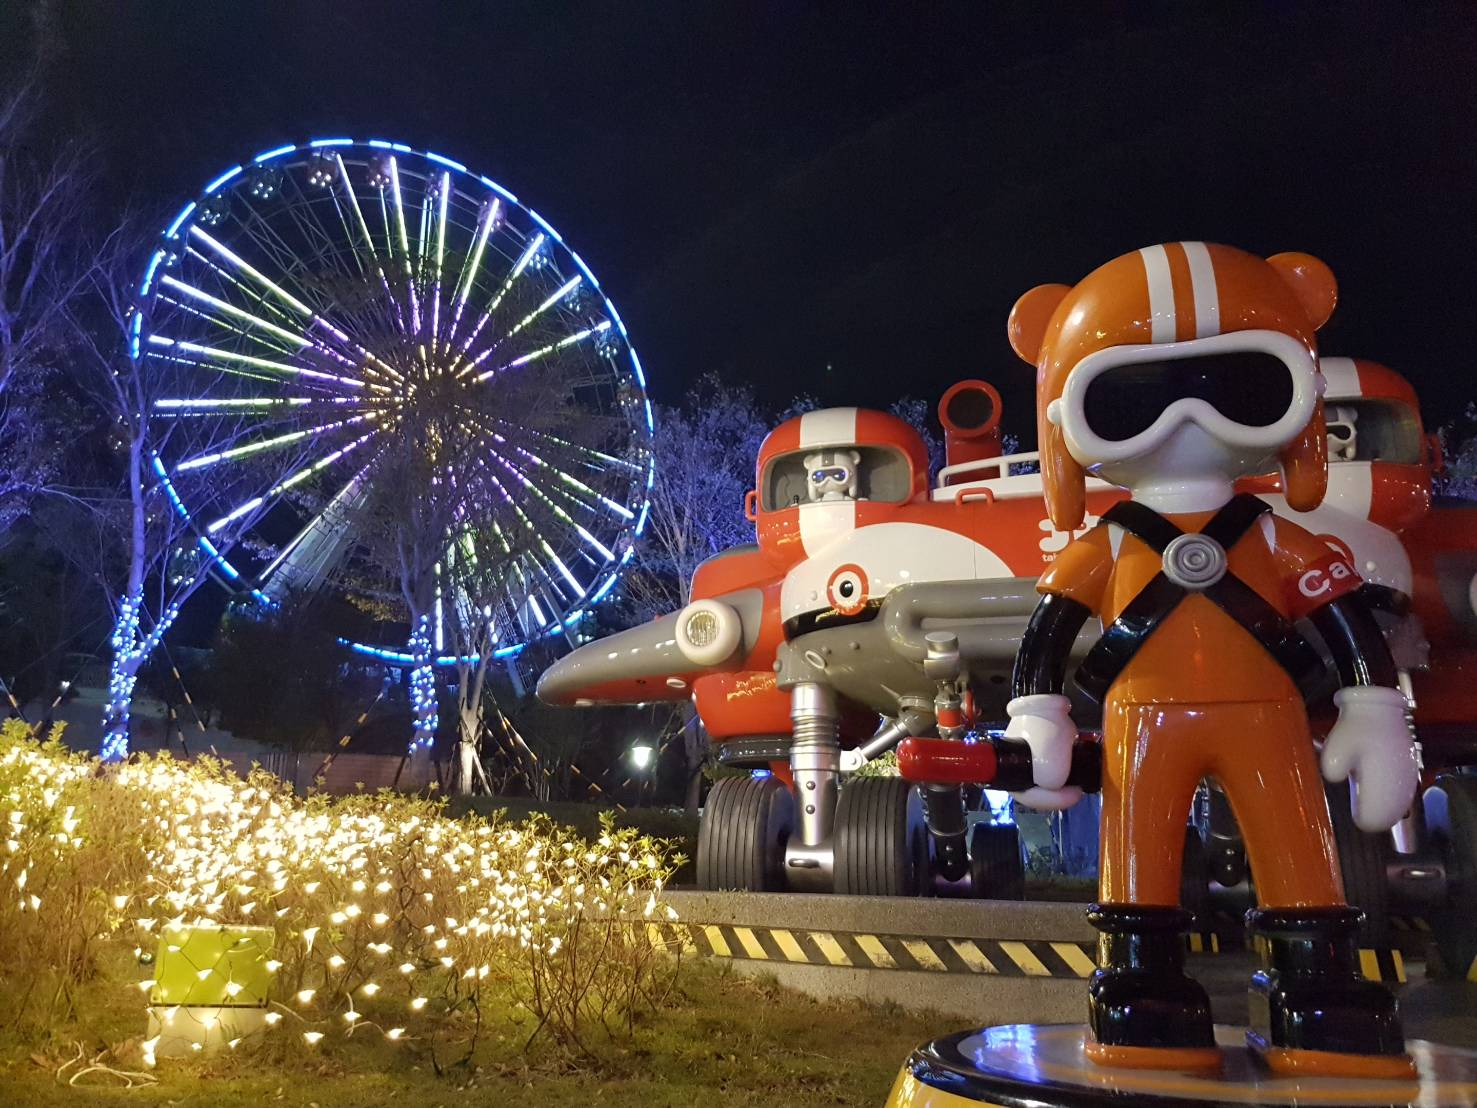 Taipei children's amusement park decorated with Christmas decorations at night